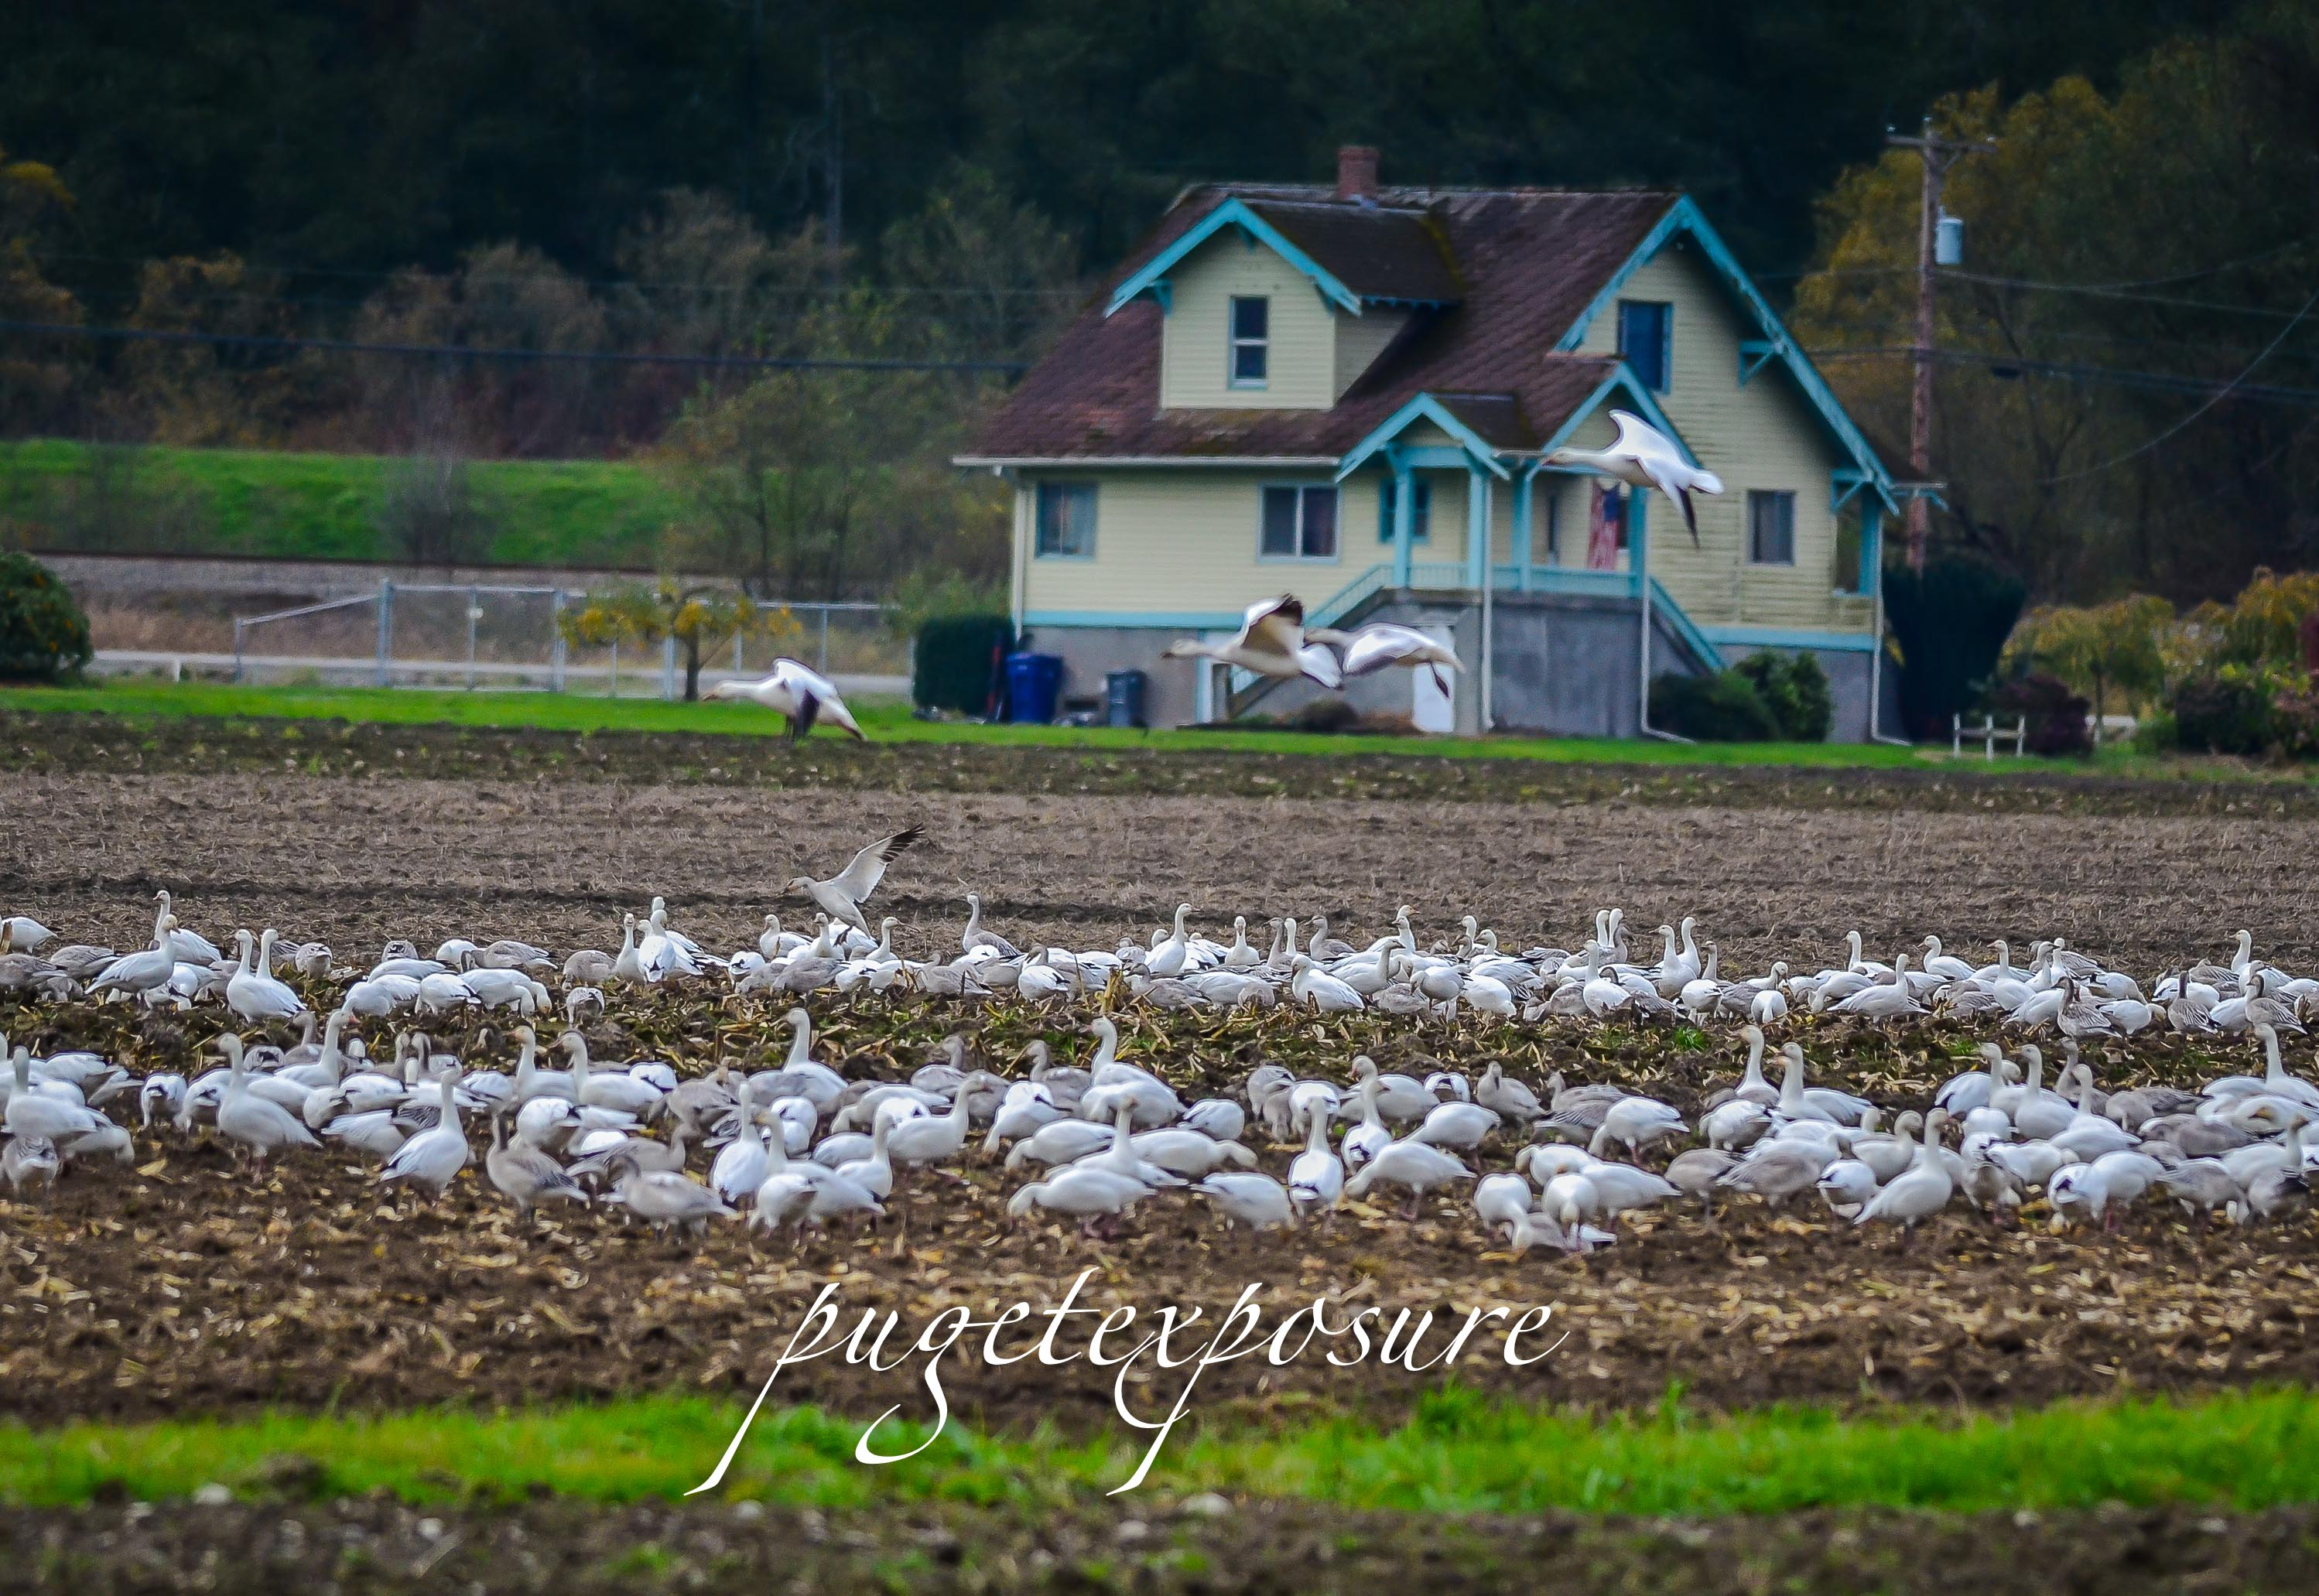 Pioneer Highway Farm house and a large flock of Snow Geese